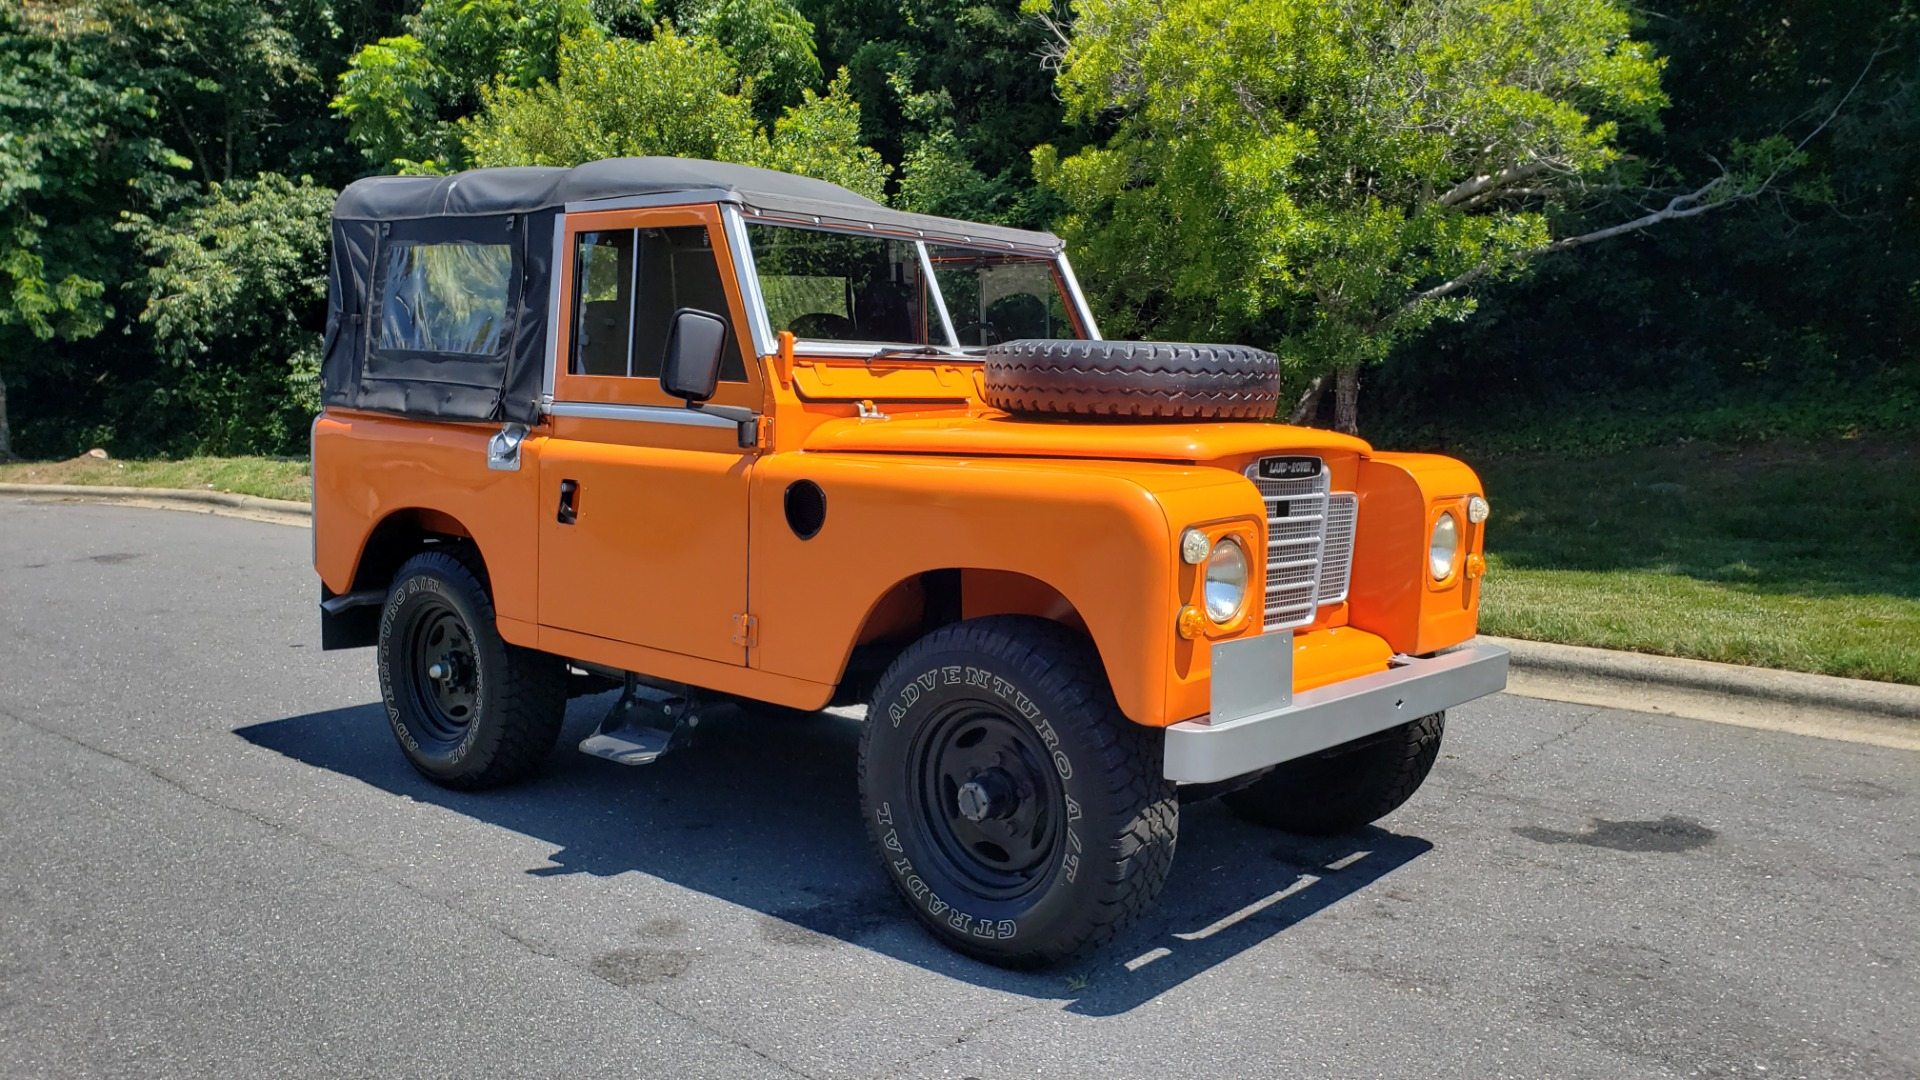 Used 1982 Land Rover SERIES 3 4X4 / SOFT-TOP / FULLY RESTORED / RUNS GREAT for sale $41,900 at Formula Imports in Charlotte NC 28227 4